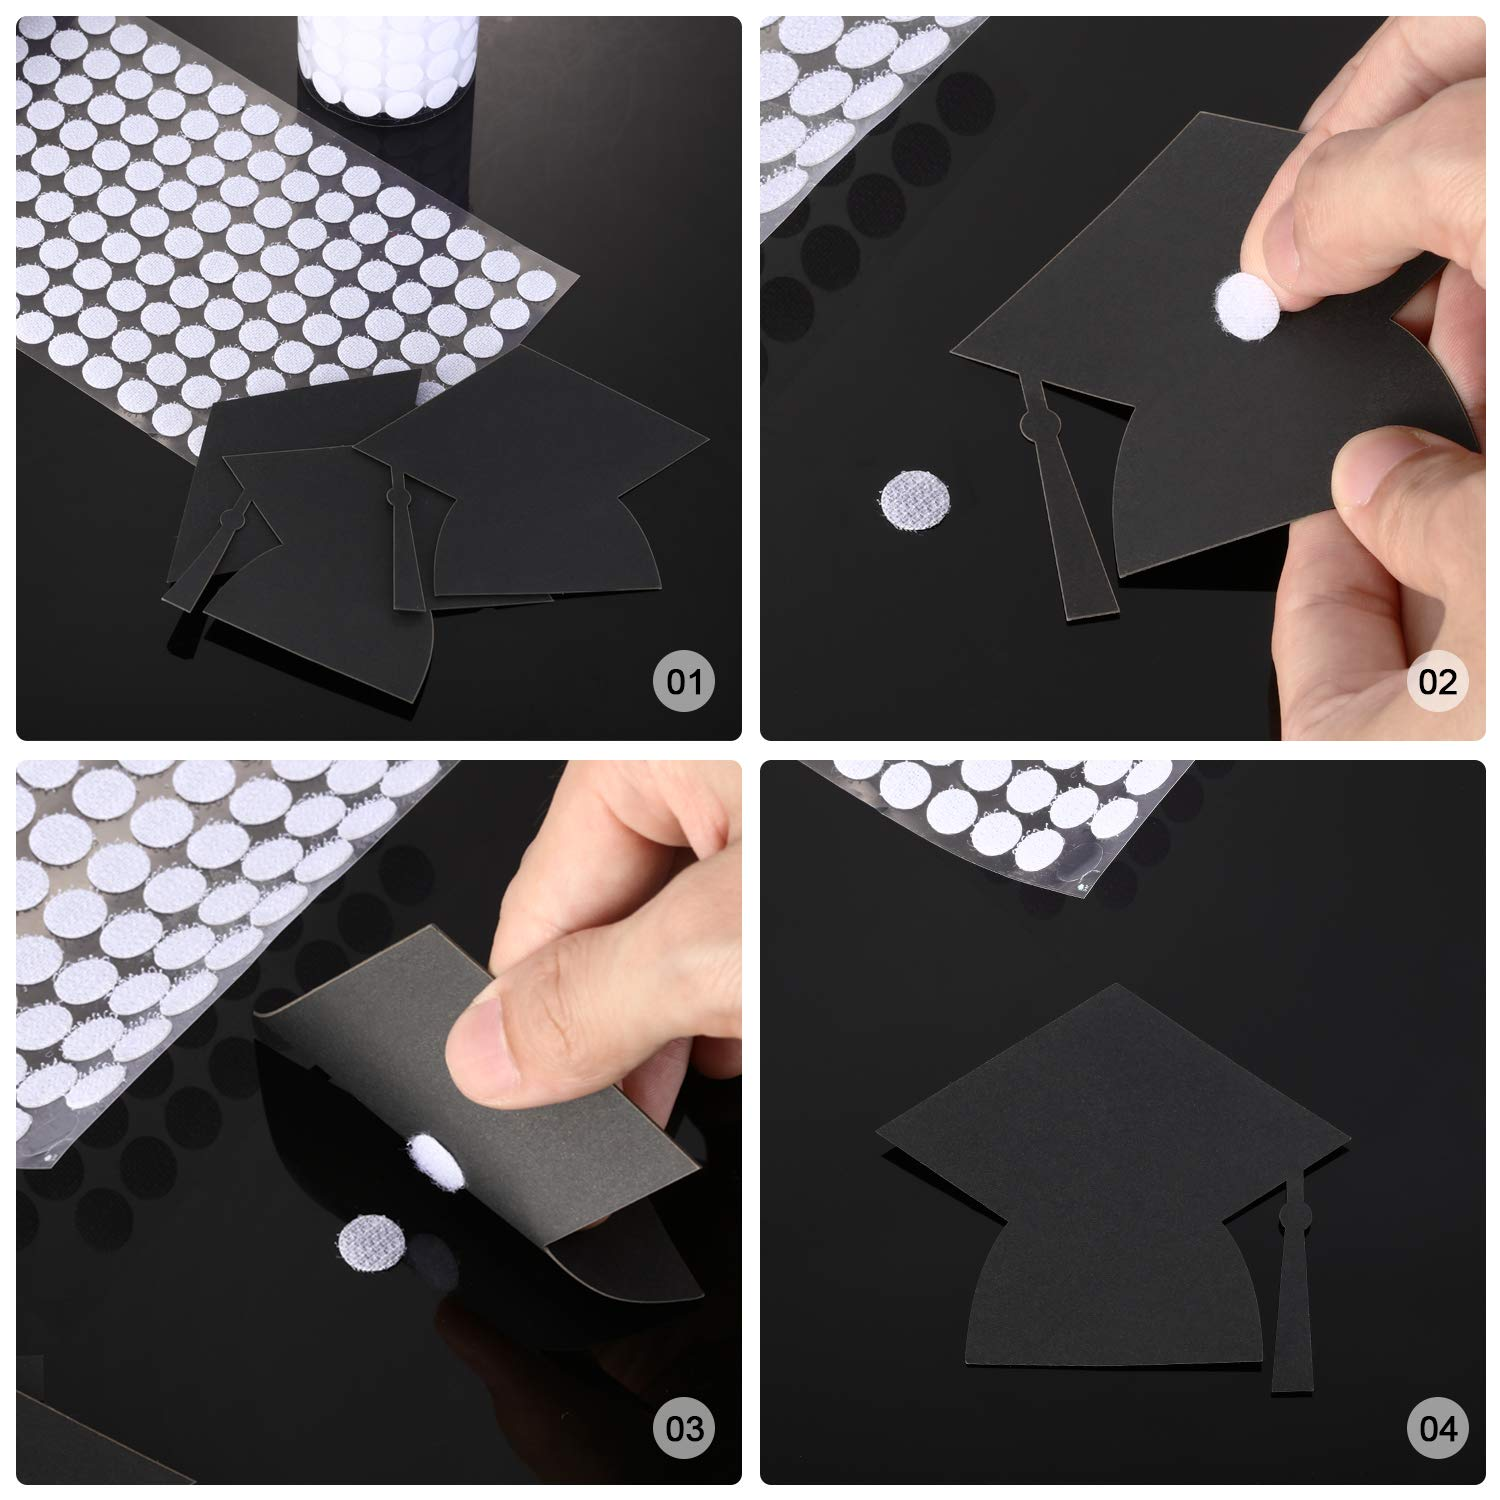 1200 Pieces 3//8 Inch White Sticky Coins Dots Tapes Self-Adhesive Hook and Loop Coins Round Dots